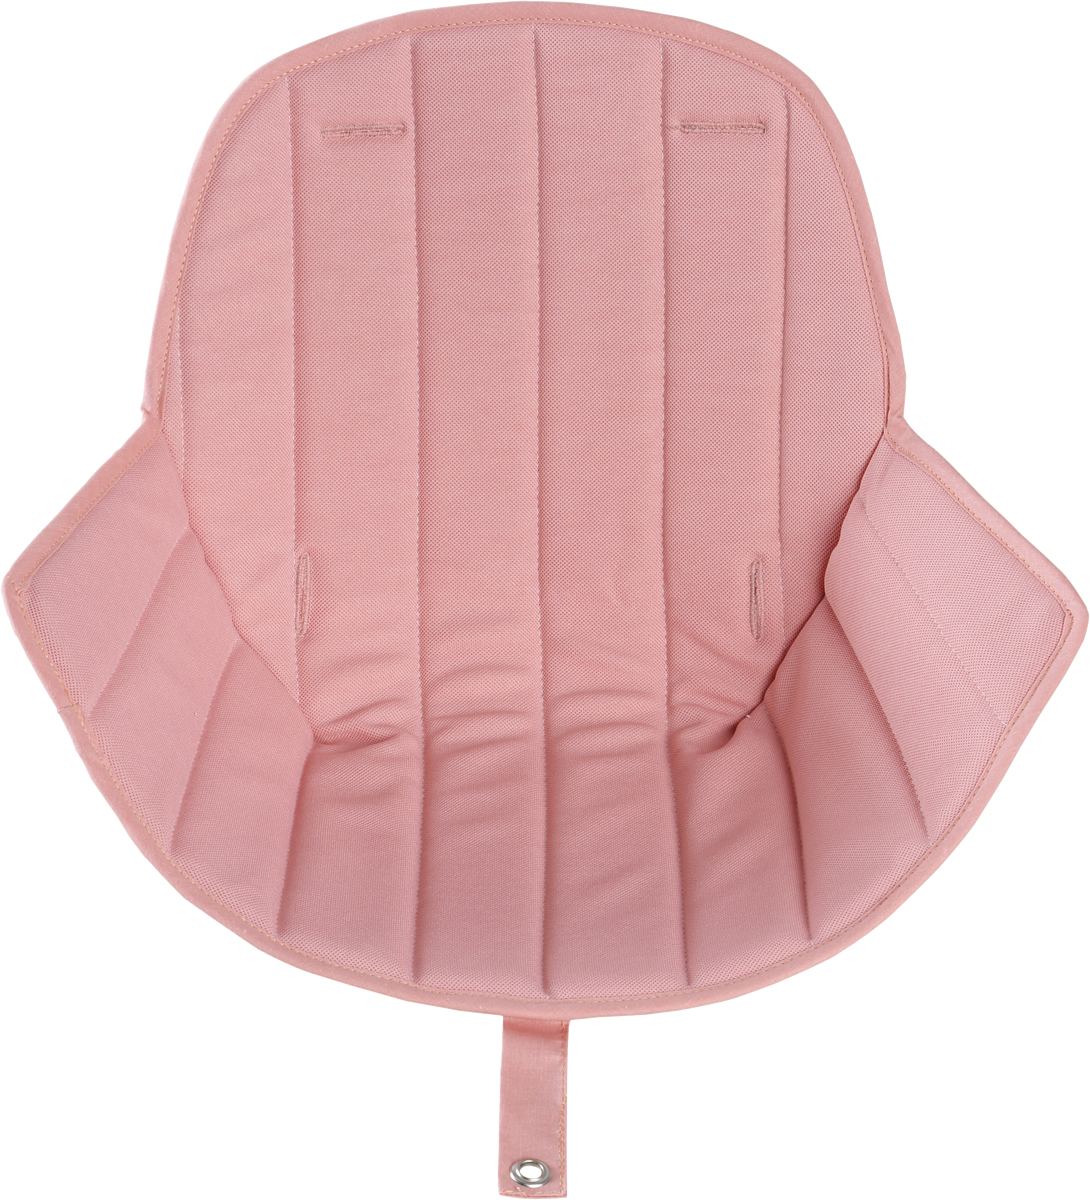 albee baby high chair black lycra covers micuna ovo cushion pink